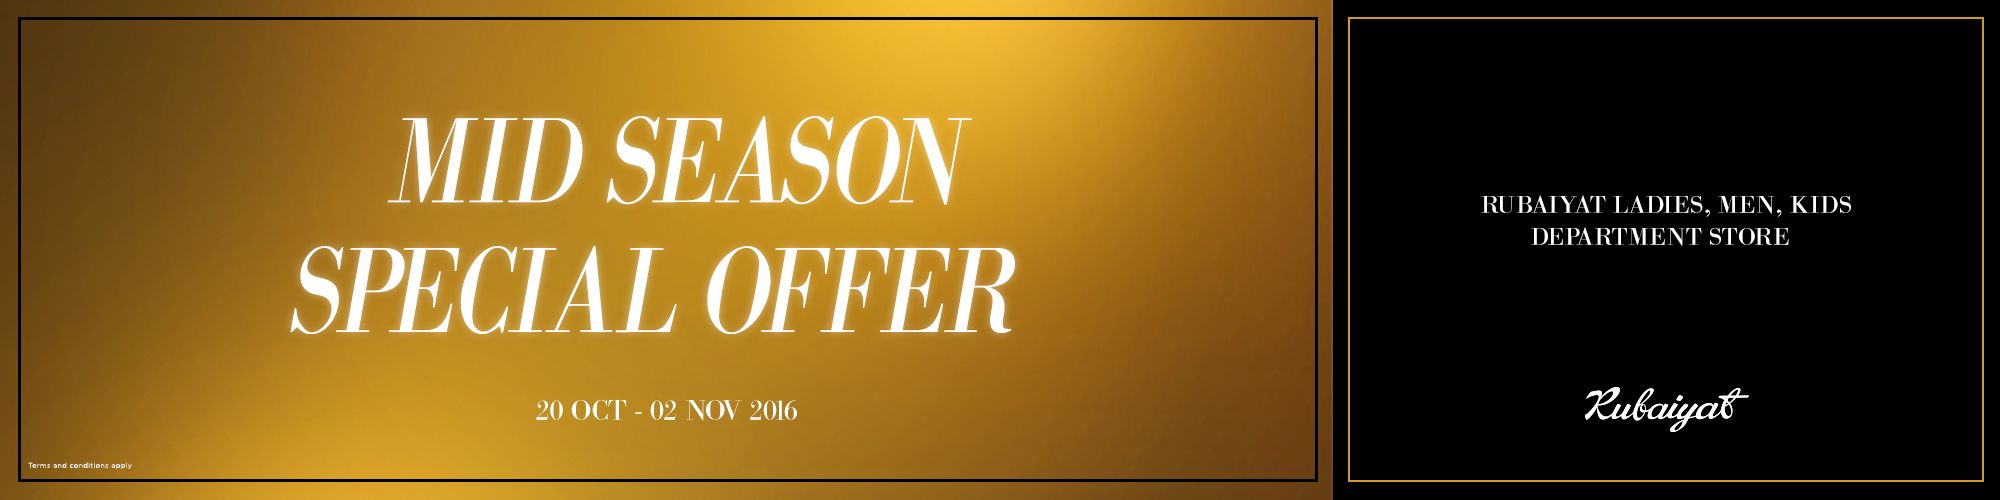 Mid-Season-Special-Offer-Web-banner-06